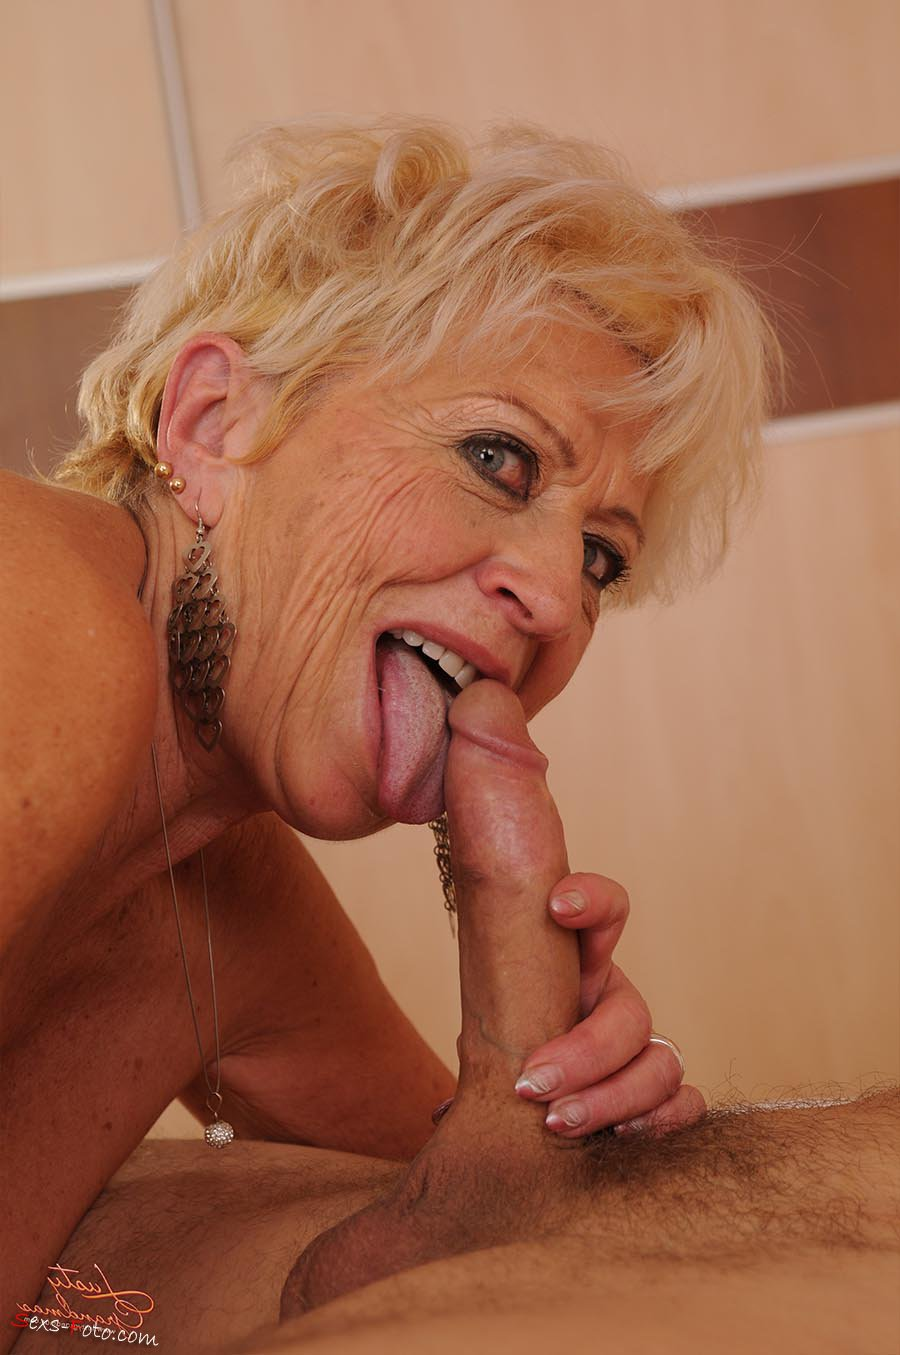 Unbelievably horny granny gives hot blowjob to her man